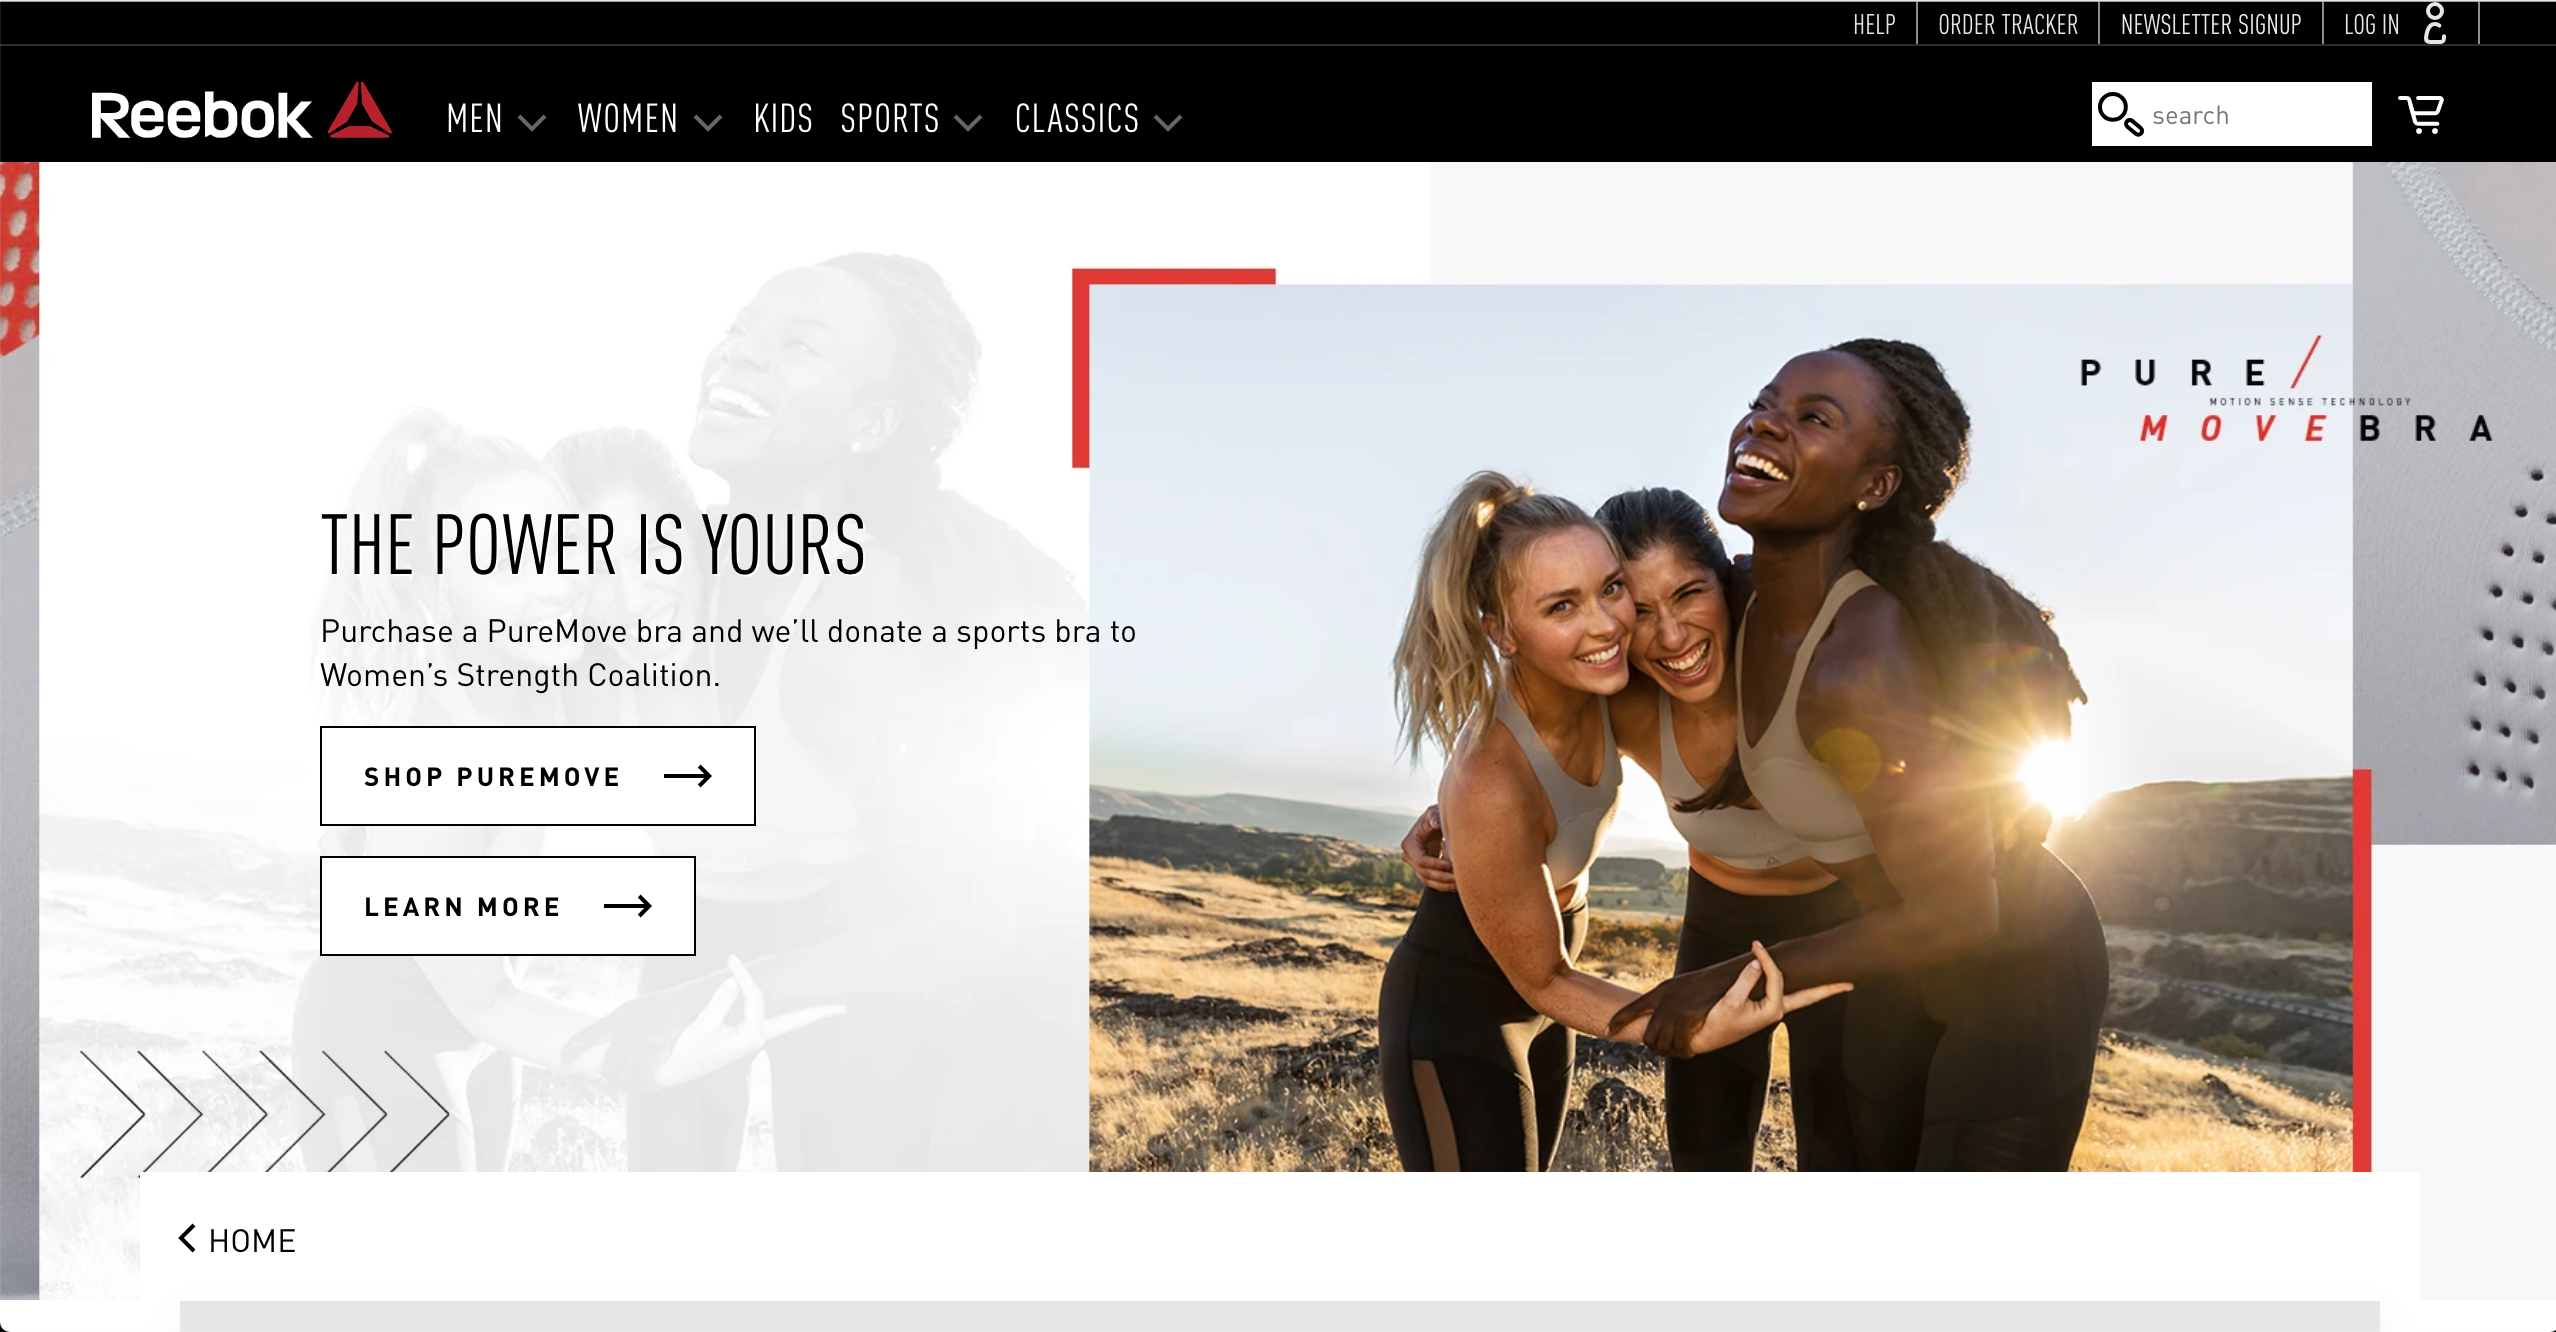 Reebok Women s product page